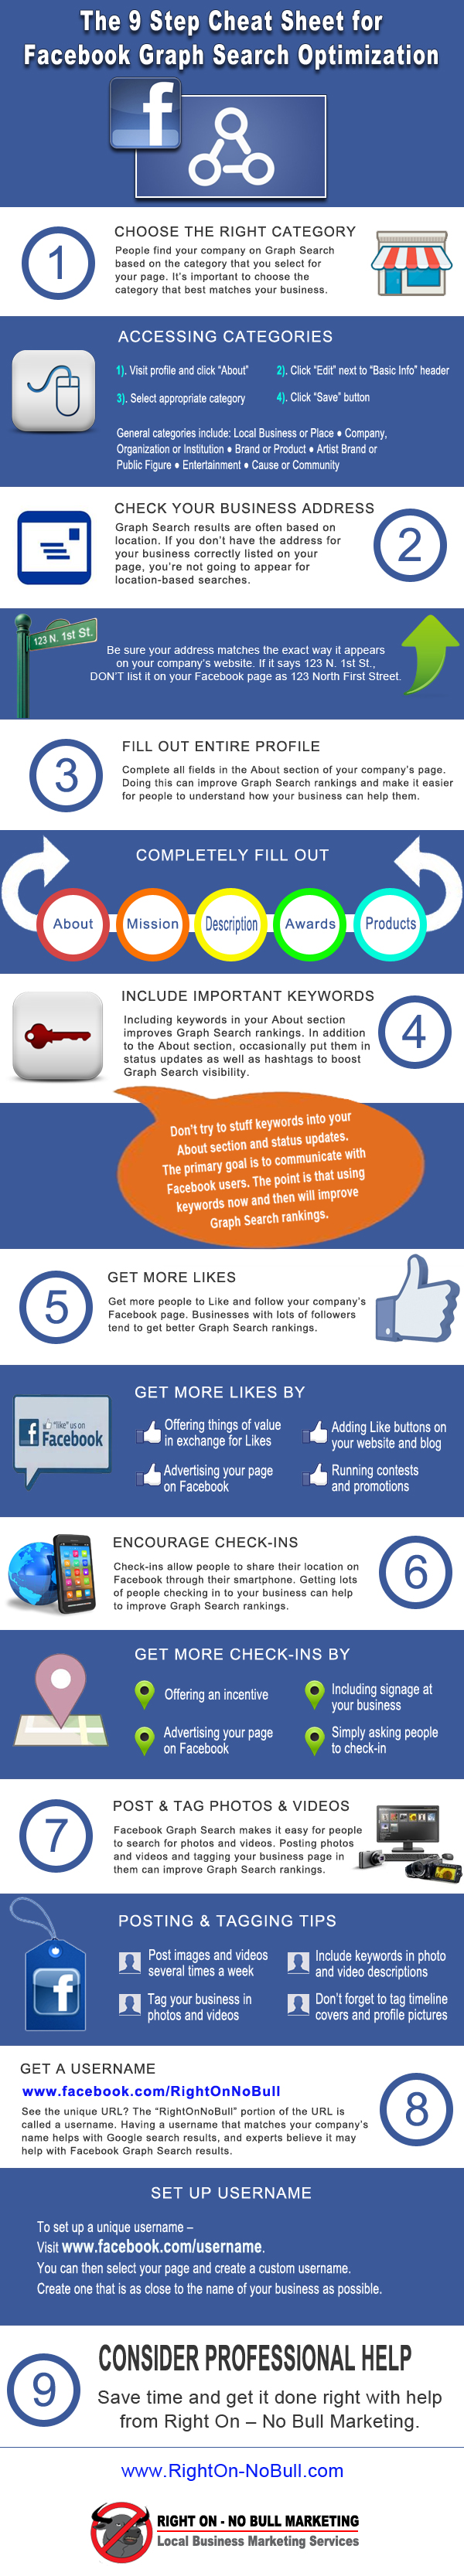 the-9-step-cheat-sheet-for-facebook-graph-search-optimization_51ddc852f3fee